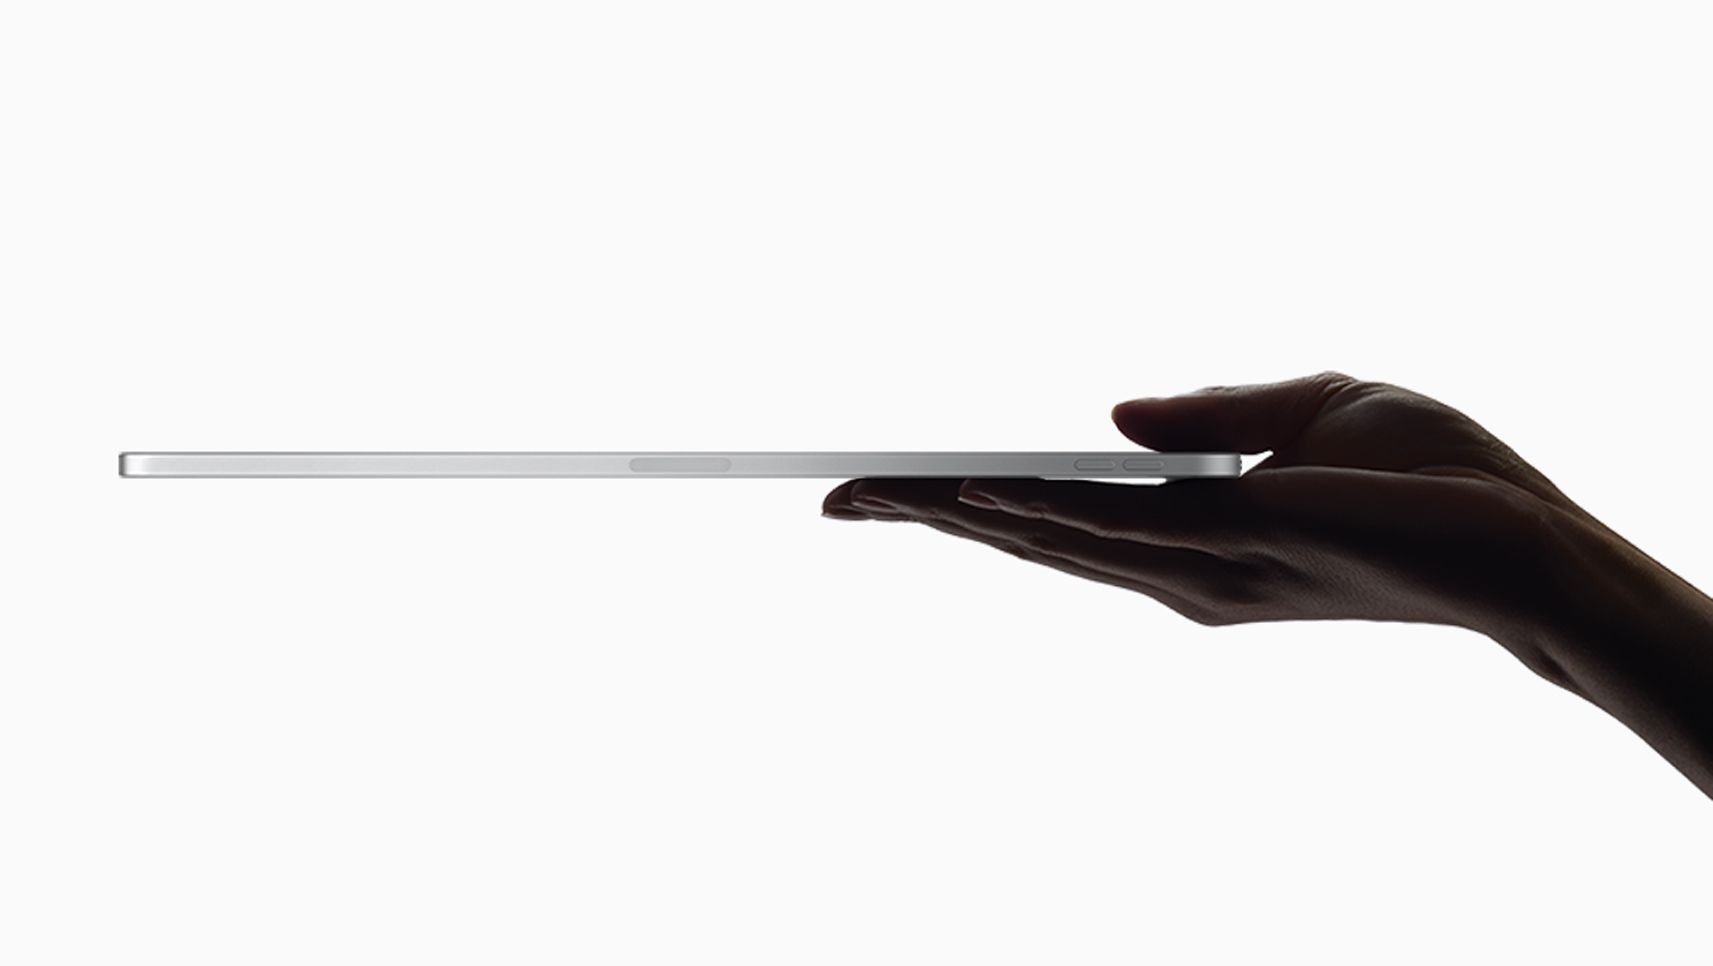 The new iPad Pro has a USB-C port - so what can it do, exactly?